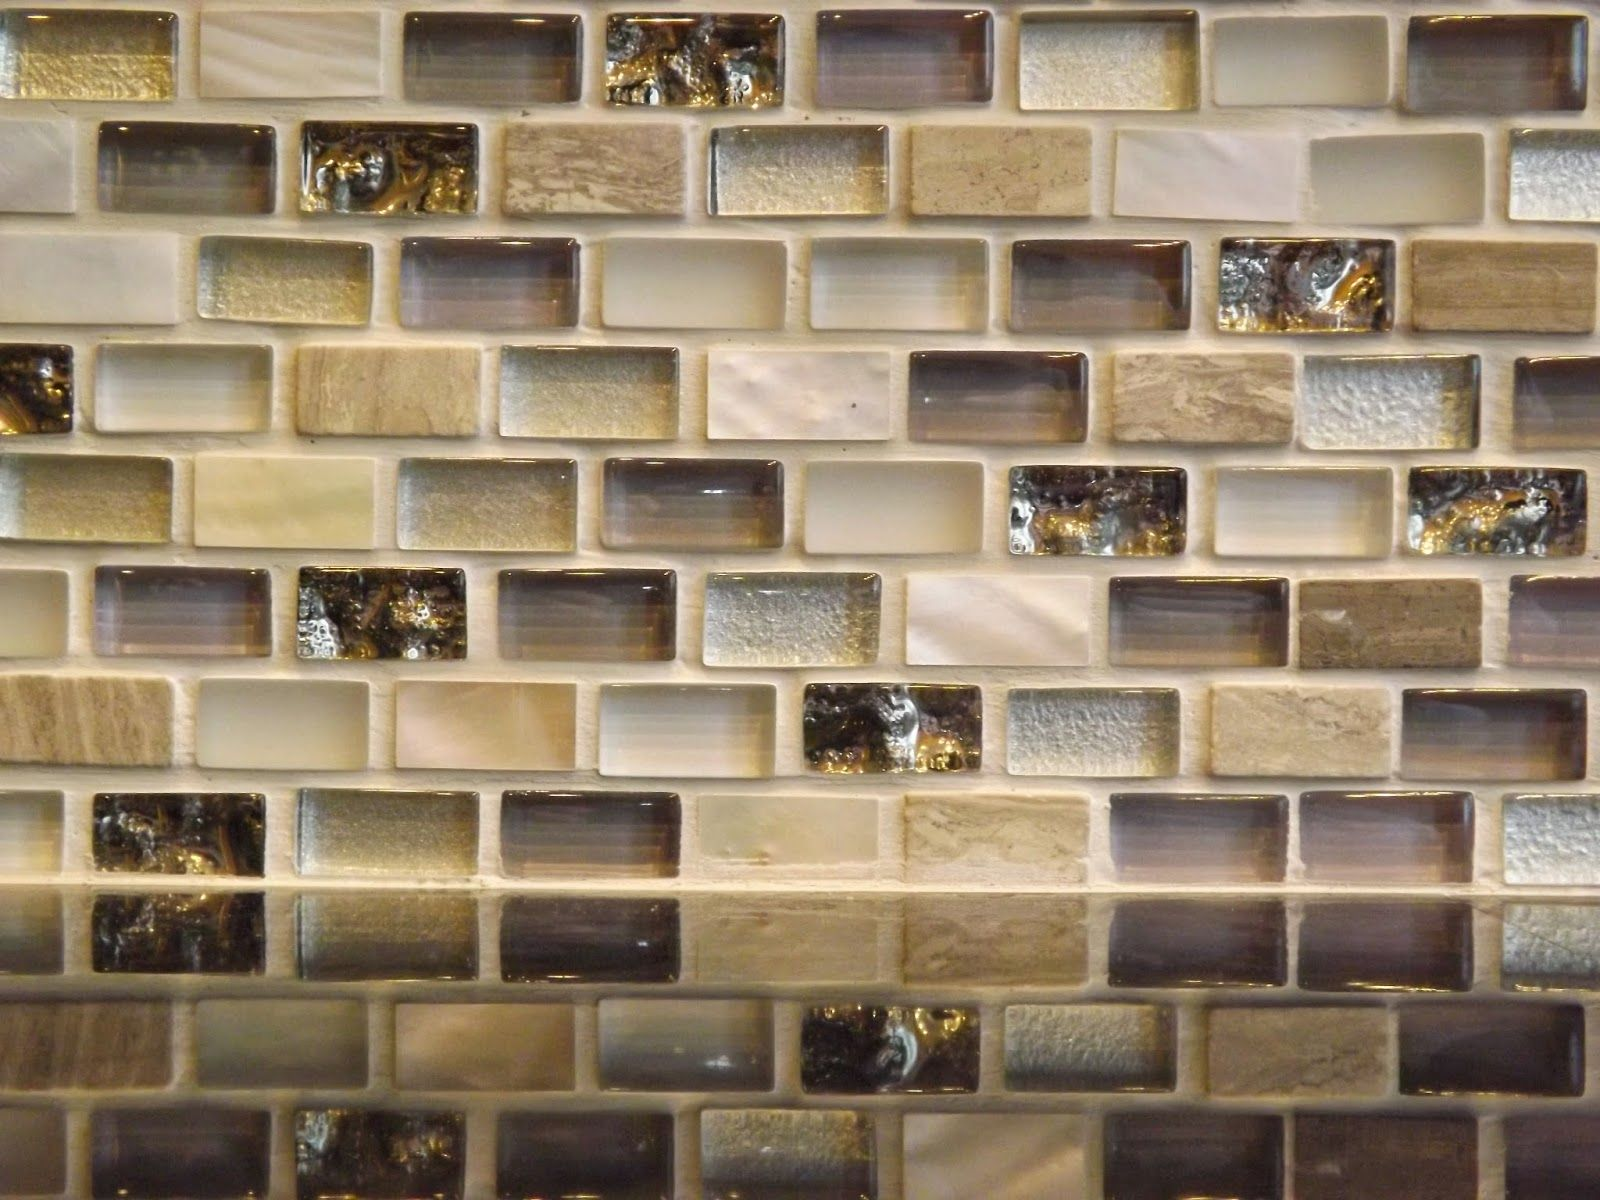 Paragon Moon Jewel Mini Brick PatternTile. Goes with black granite, stainless steel appliances ...